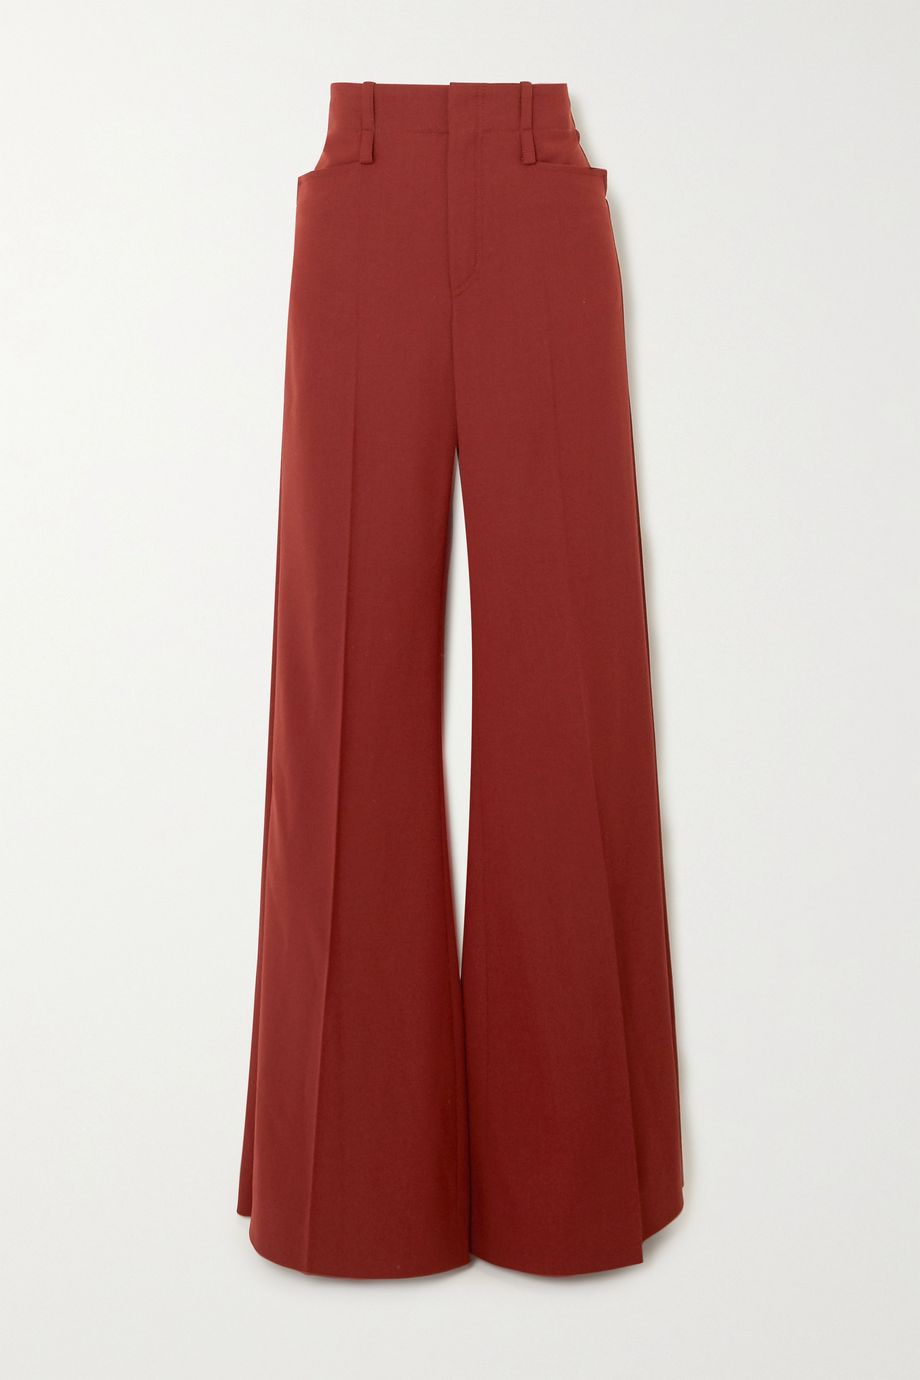 Chloé Grain de poudre wool-blend wide-leg pants